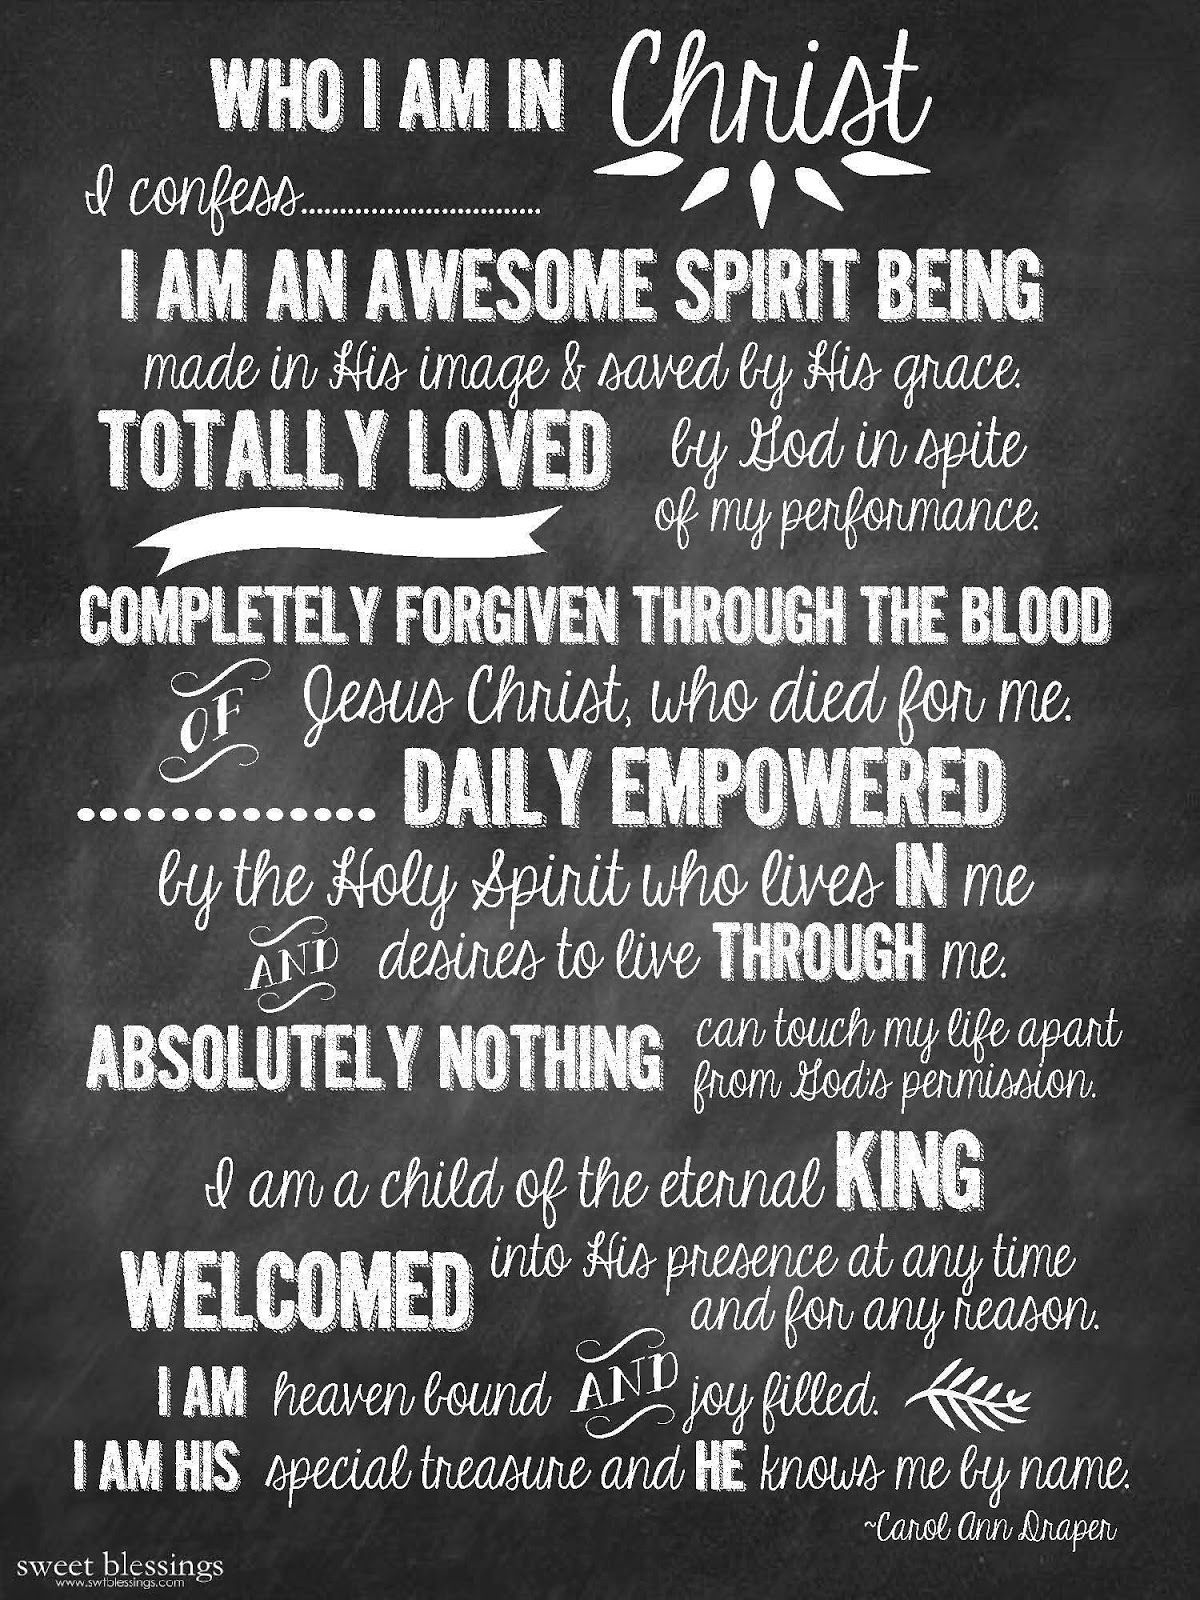 picture relating to Who I Am in Christ Printable identify Adorable Blessings: Who I am within Christ Free of charge Printable Religion